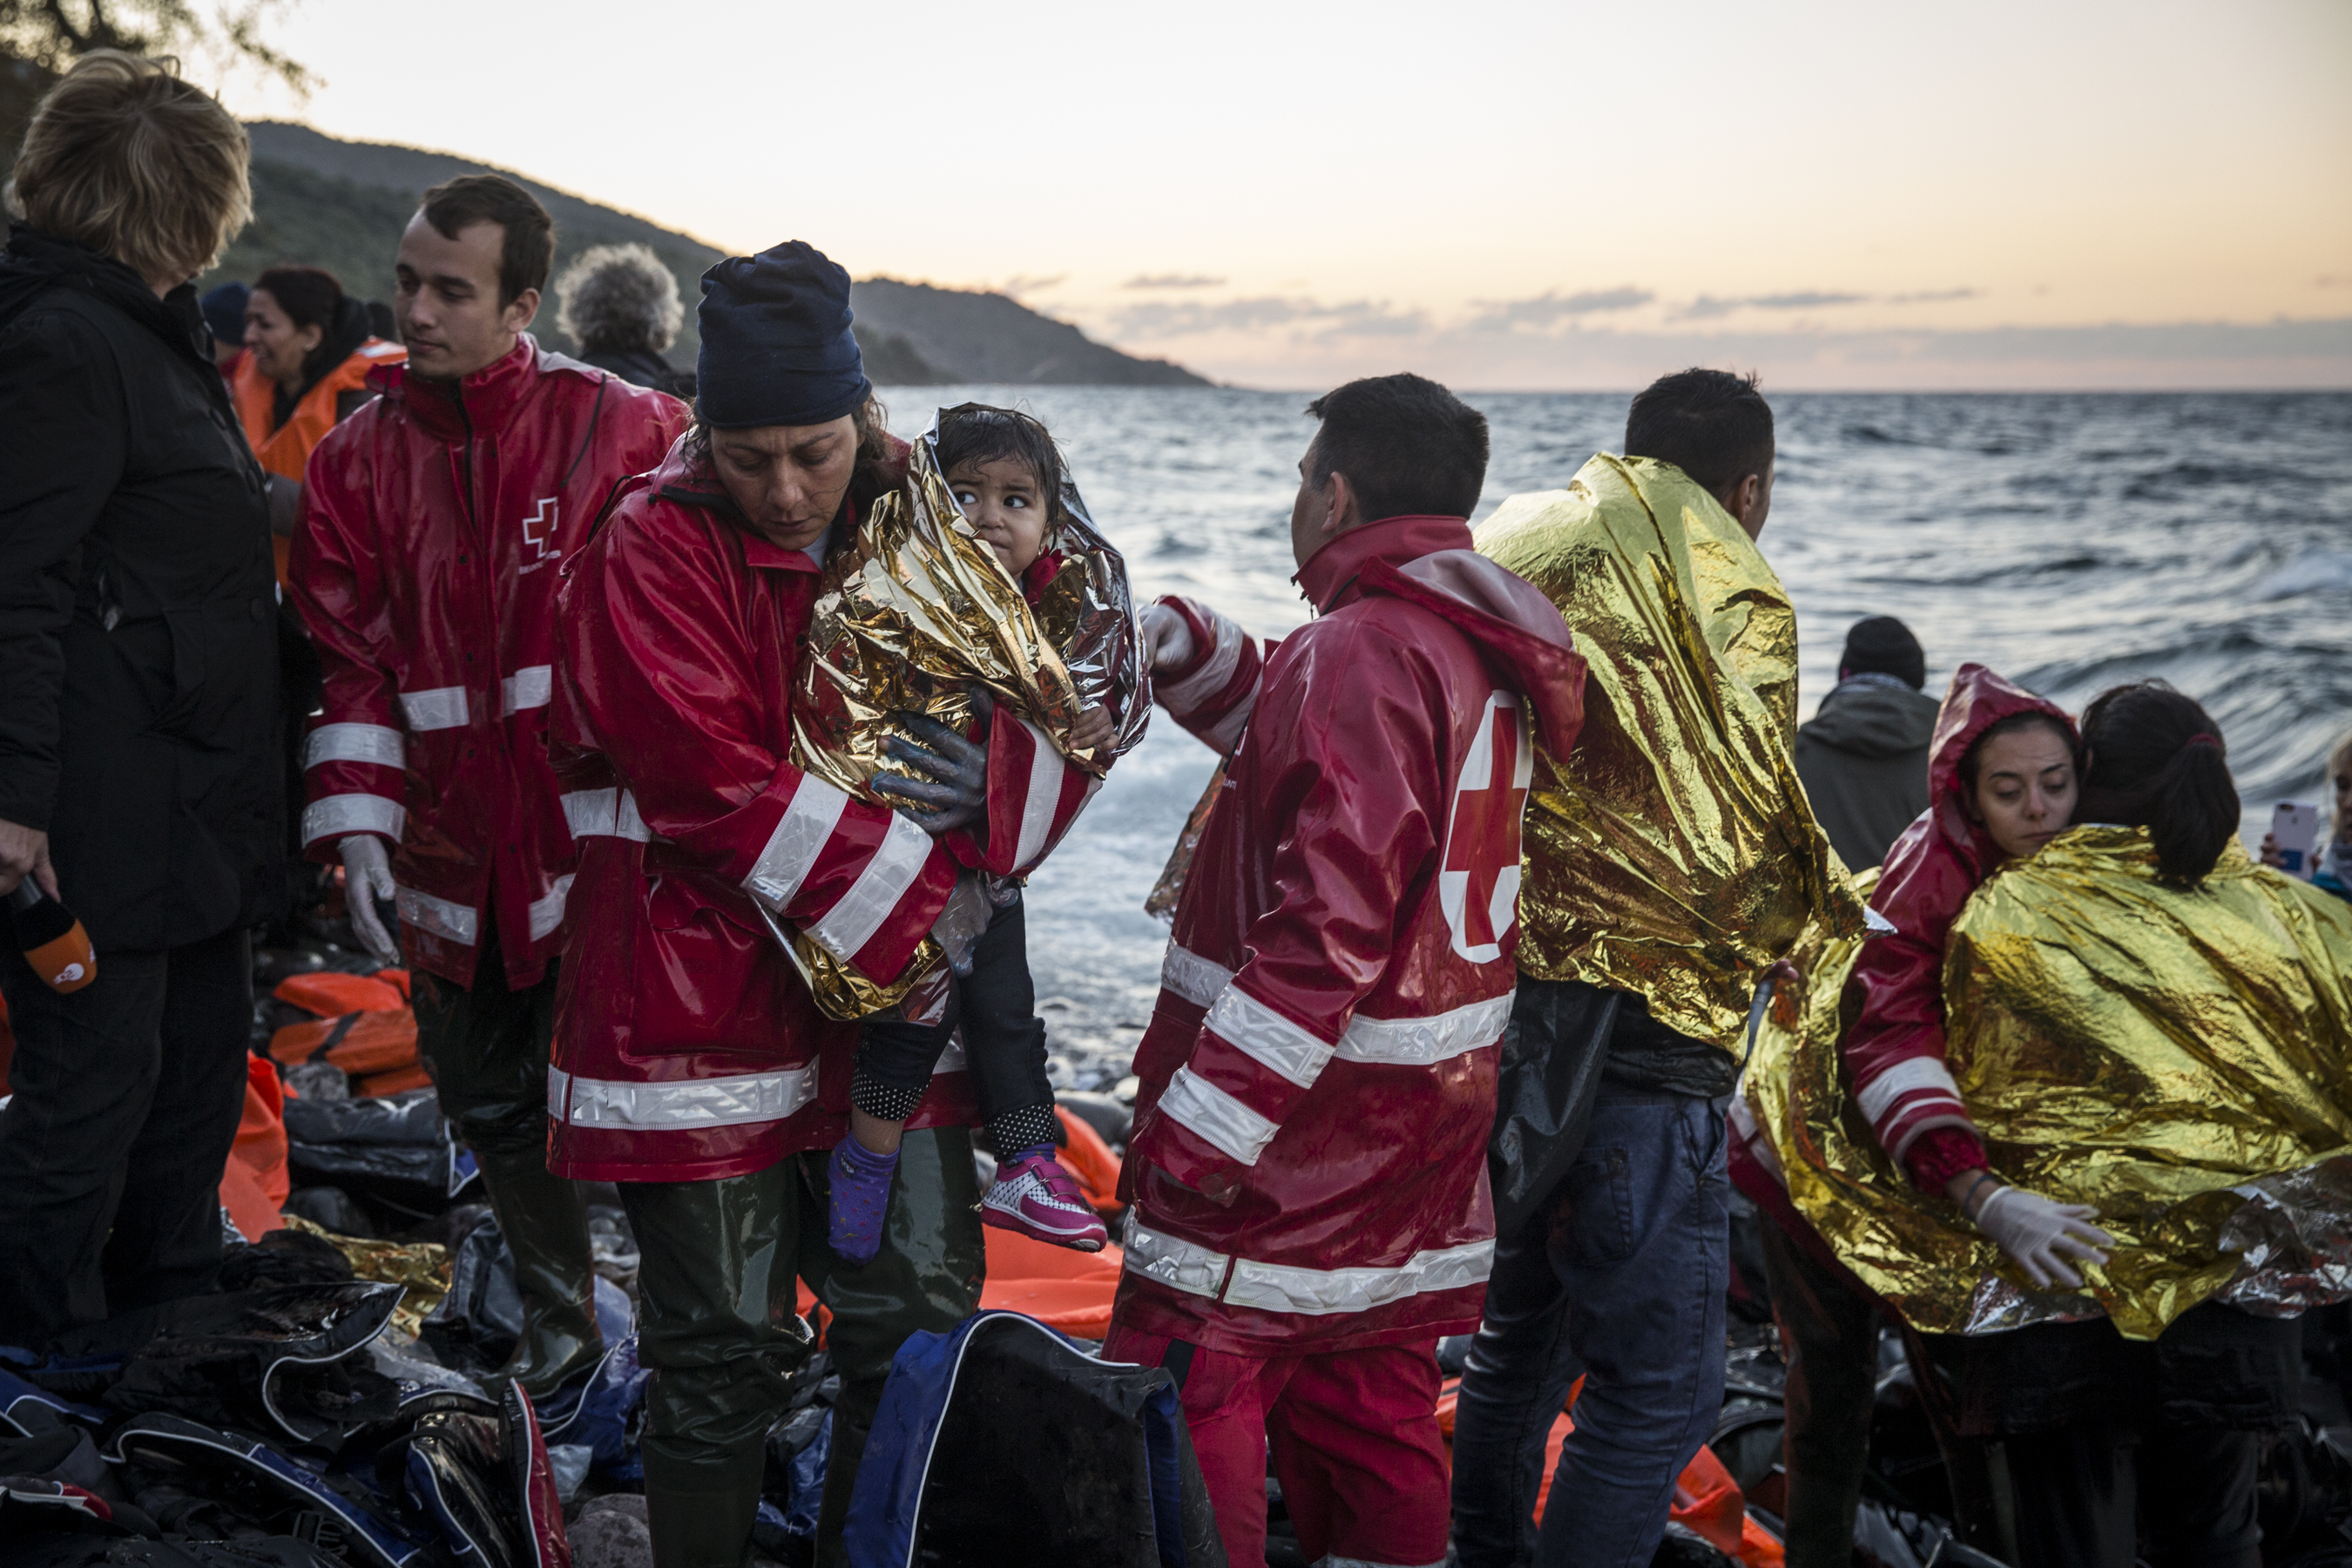 Volunteers try to warm migrants who have just come ashore on the Greek island of Lesvos near Skala Sikaminias